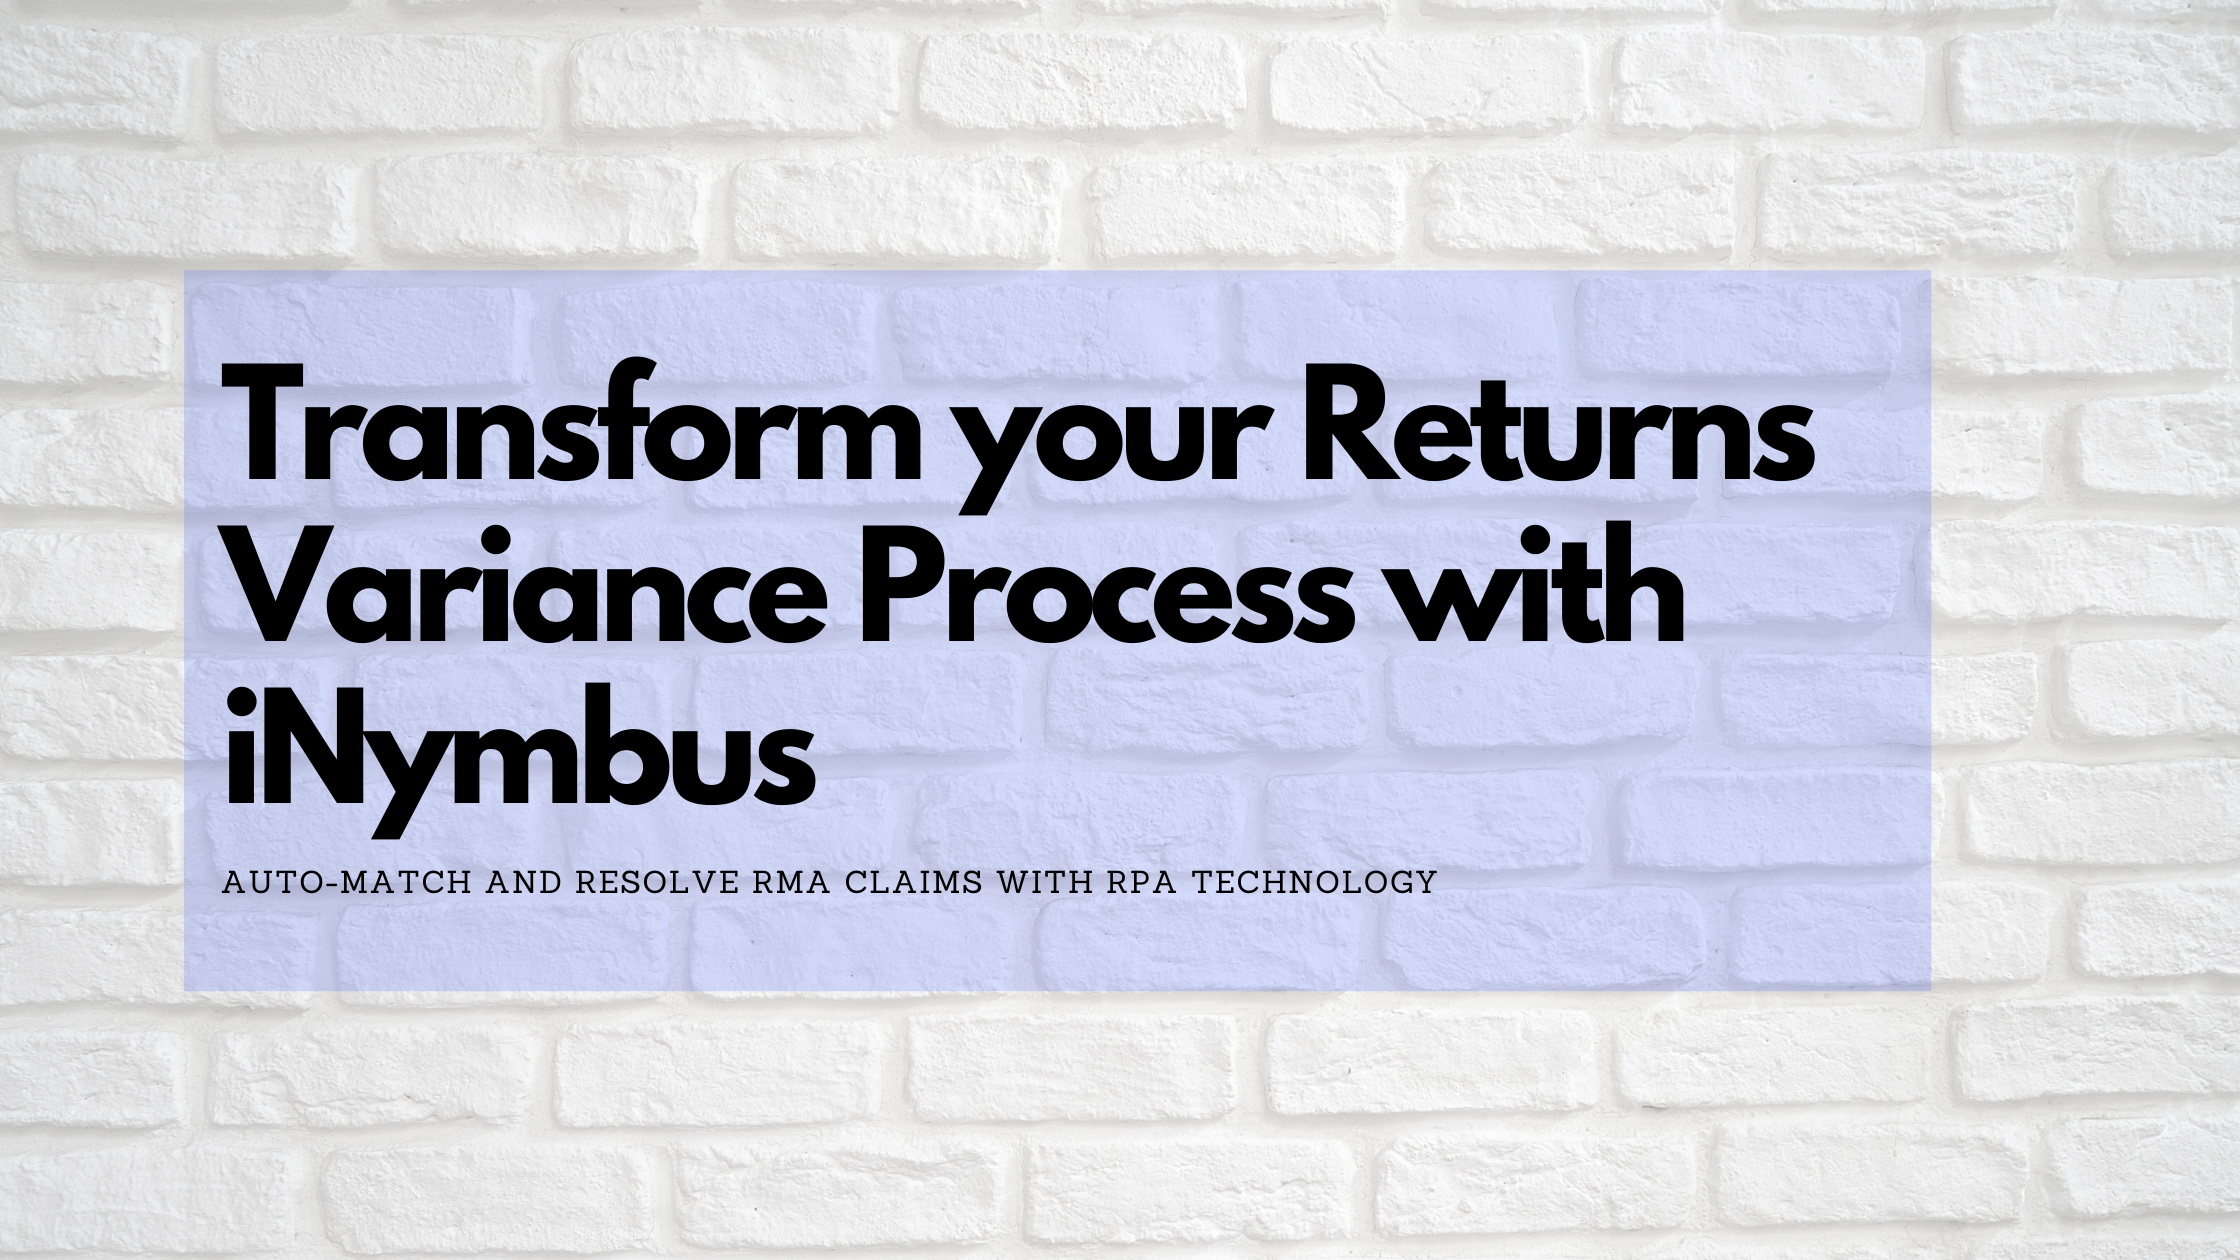 Transform your Returns Variance Process with iNymbus